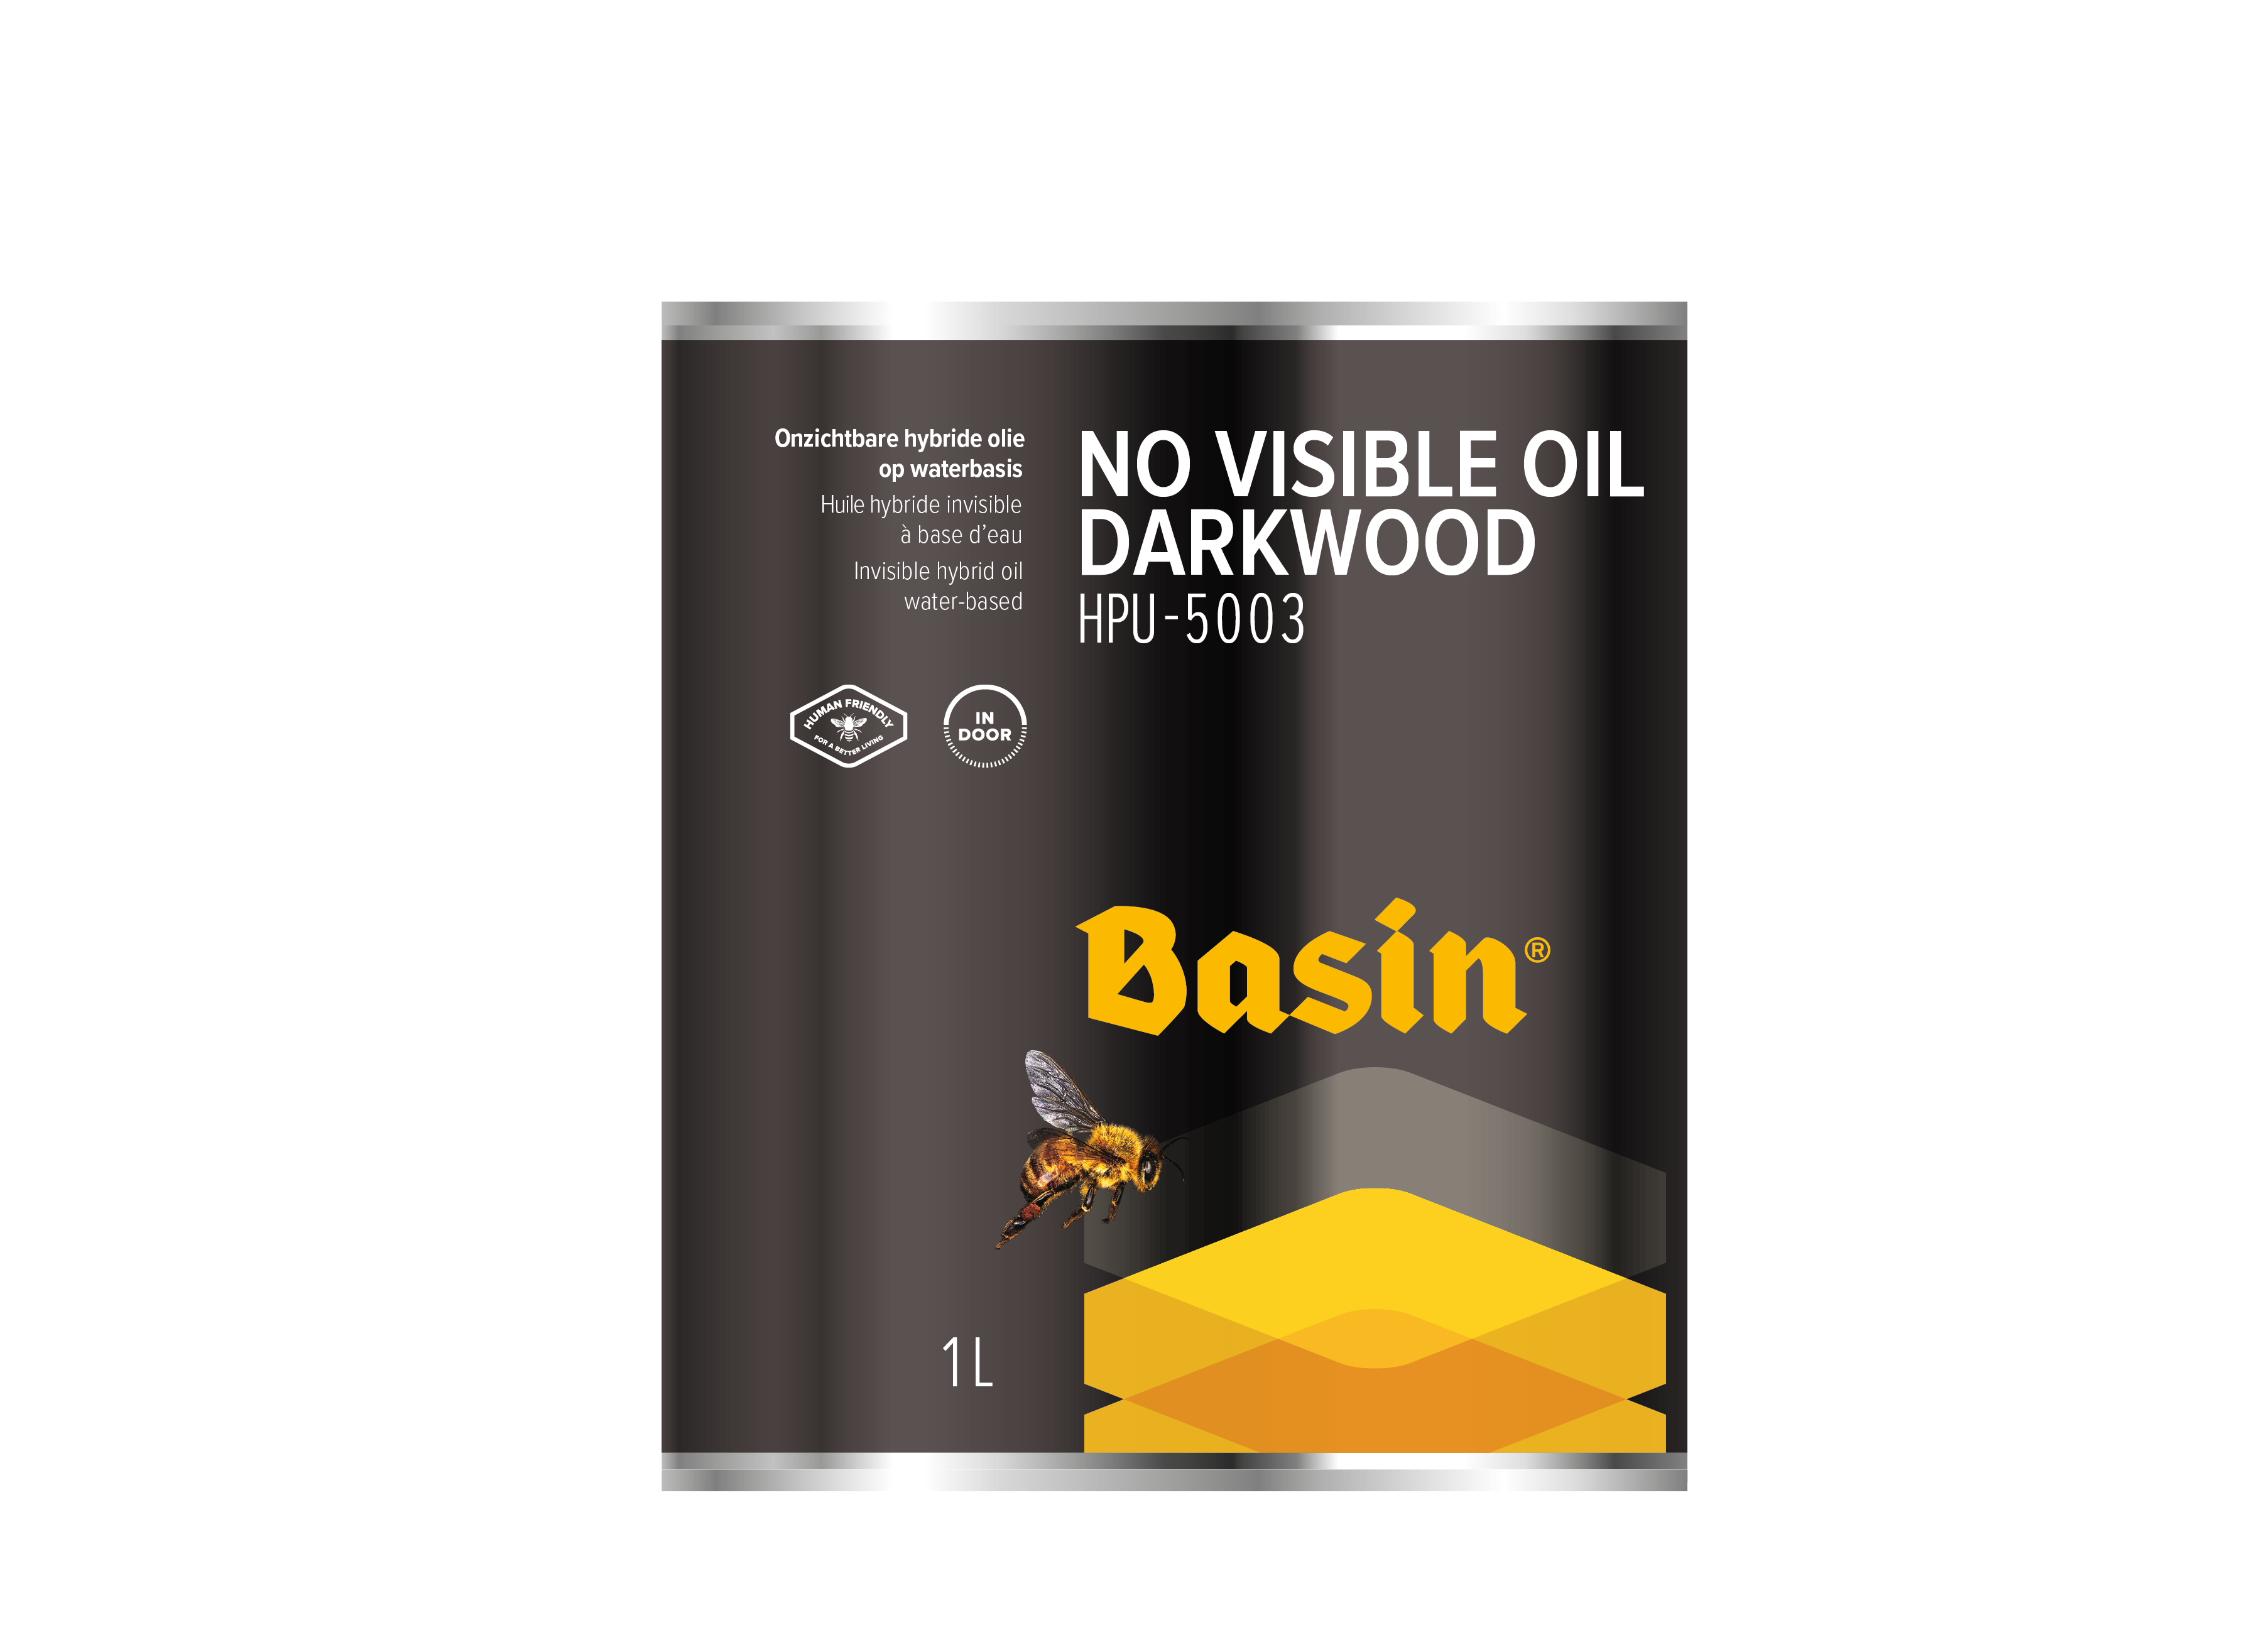 no visible oil darkwood